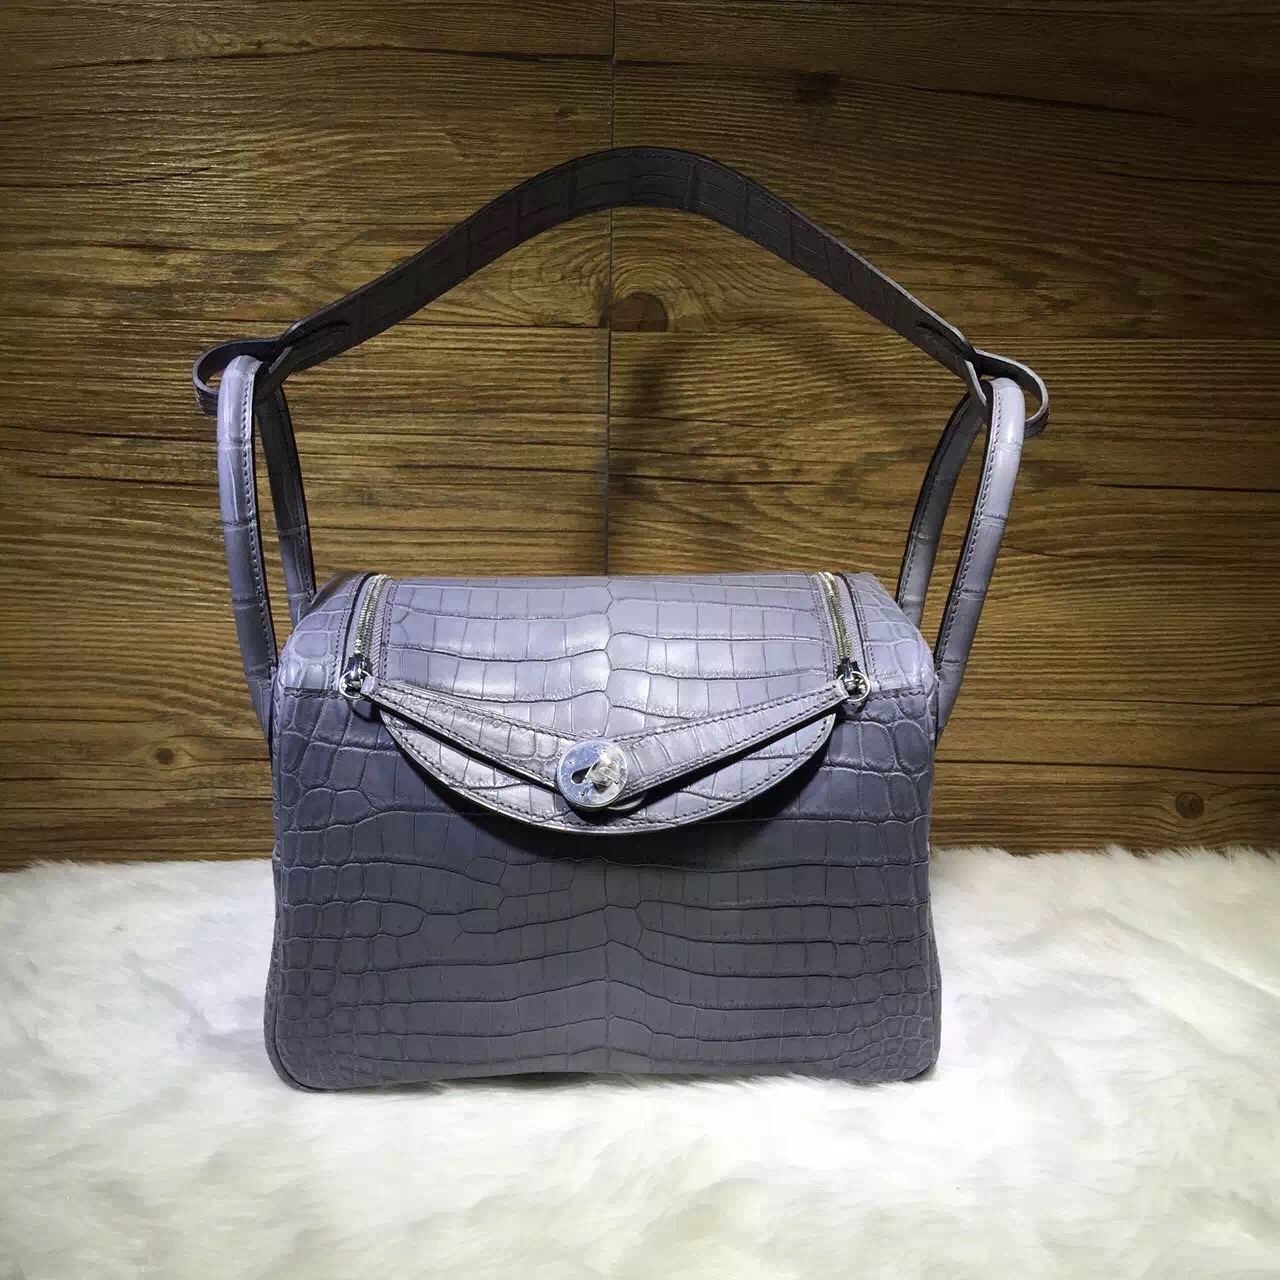 Hand Stitching Hermes Lindy Bag 26cm CK19 Mousse Grey Crocodile ...